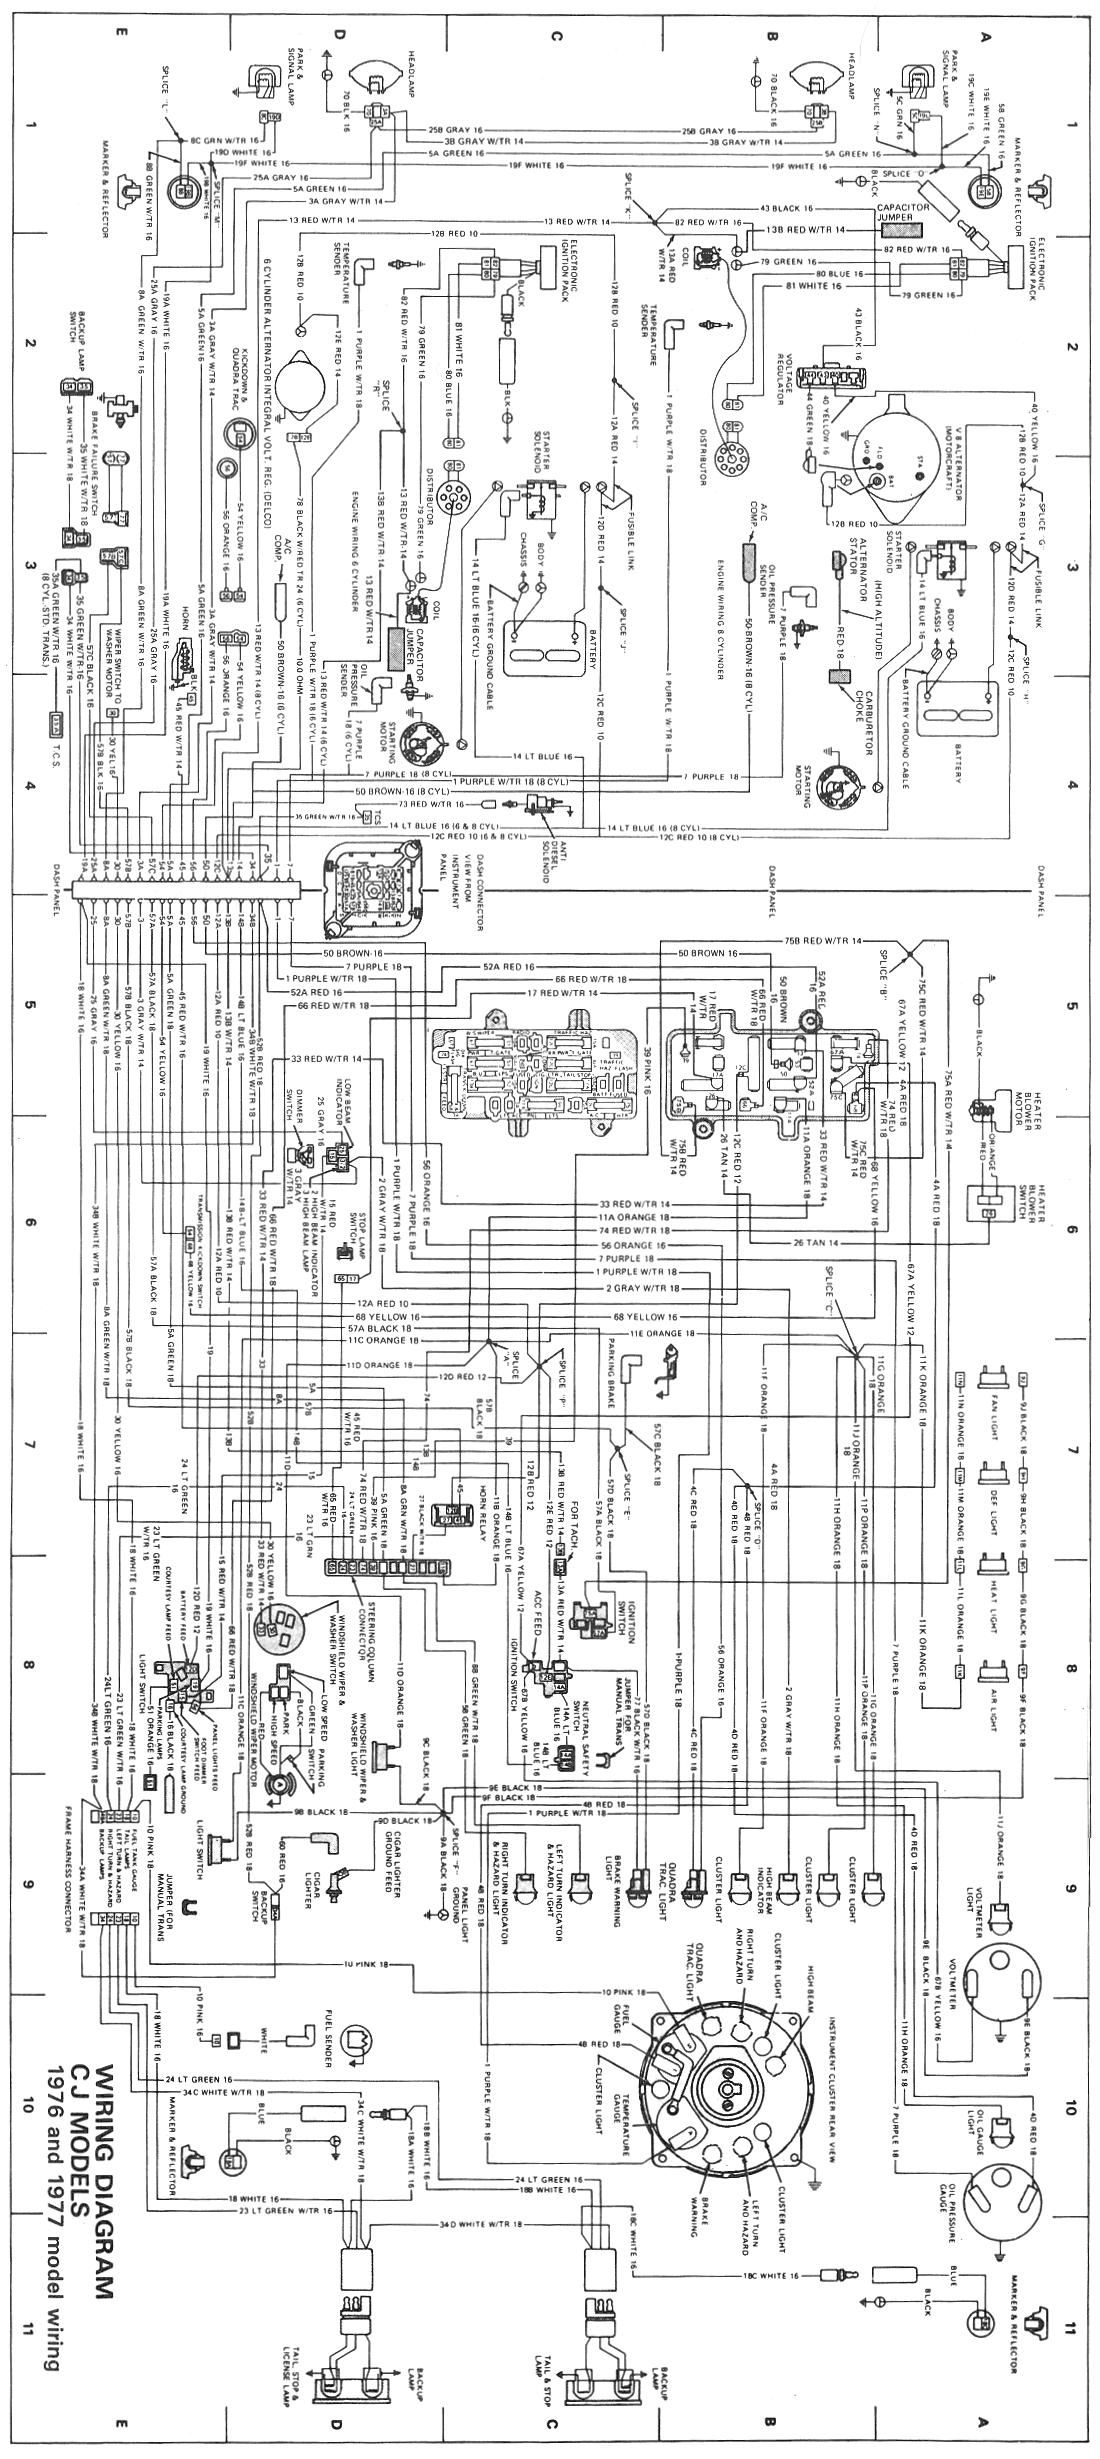 Related with 1977 cj7 fuse diagram